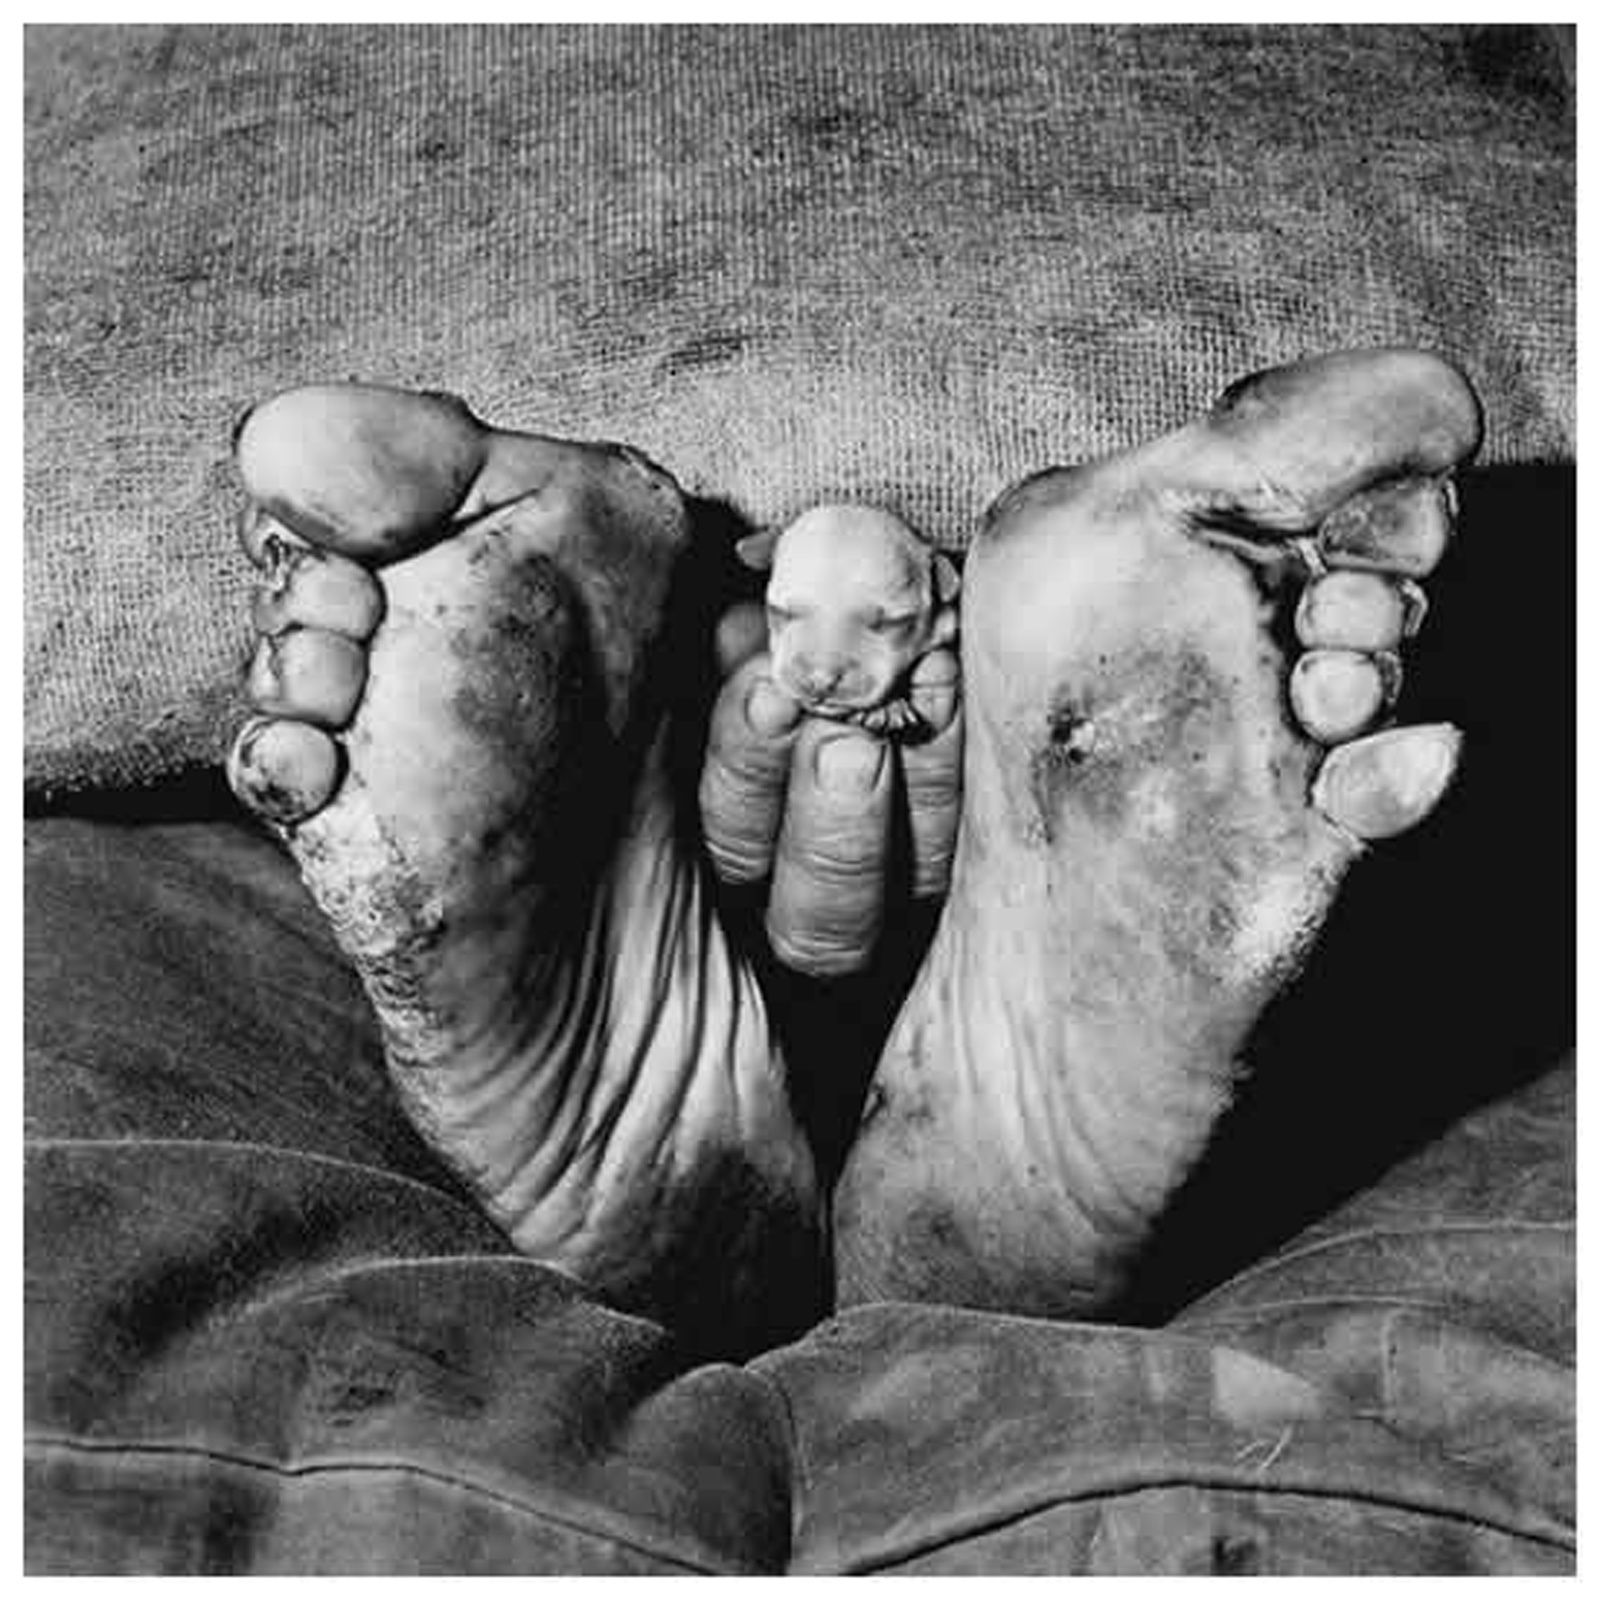 """Roger Ballen, """"Puppy between feet"""", 1999; from the series """"Outland."""" Courtesy Xavier Hufkens Gallery, Brussel."""